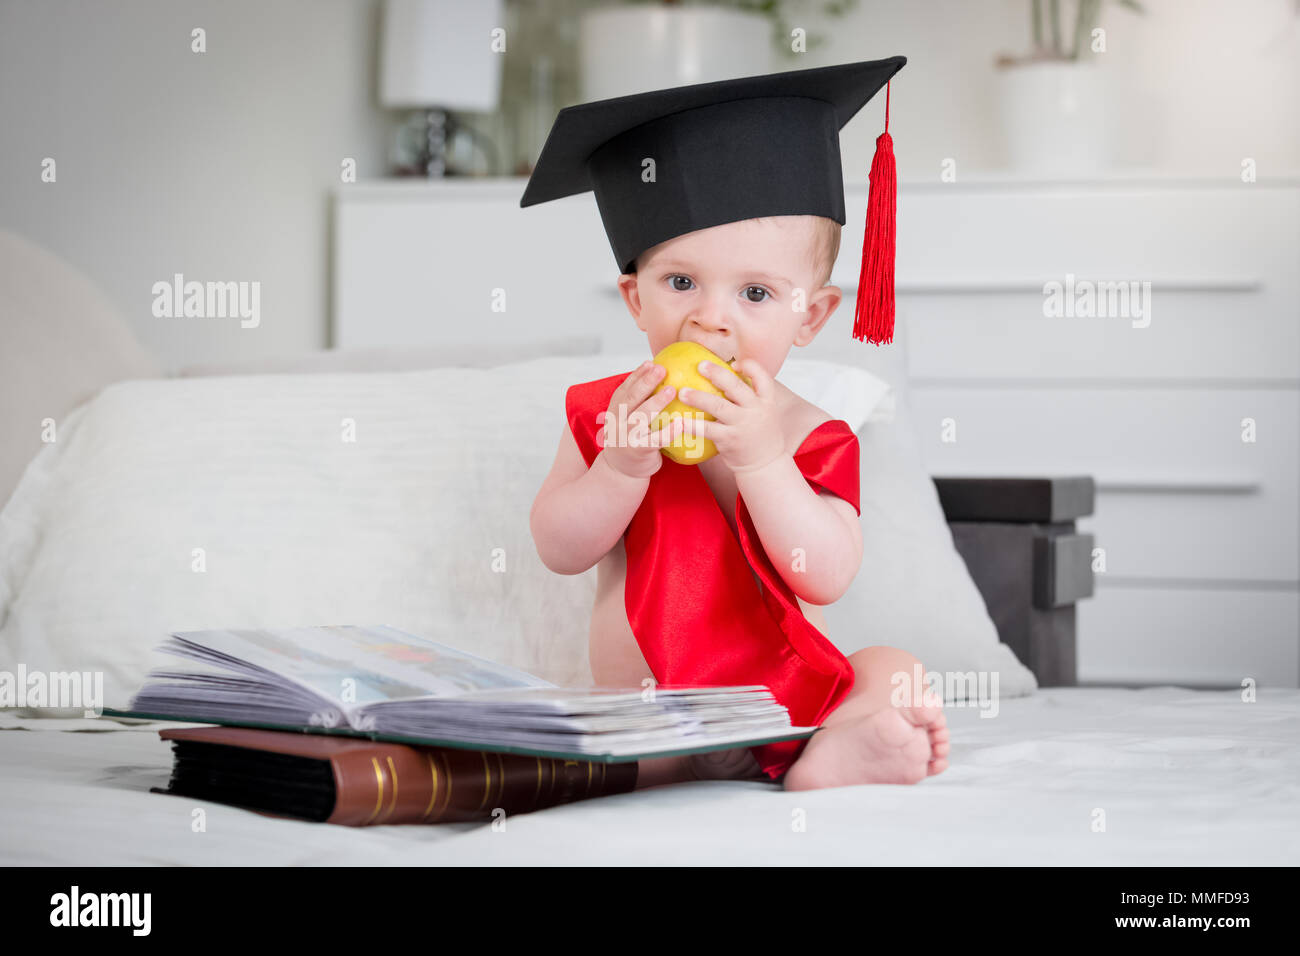 eb1d5db1543 Adorable baby boy in graduation cap sitting on bed with books and biting  apple - Stock